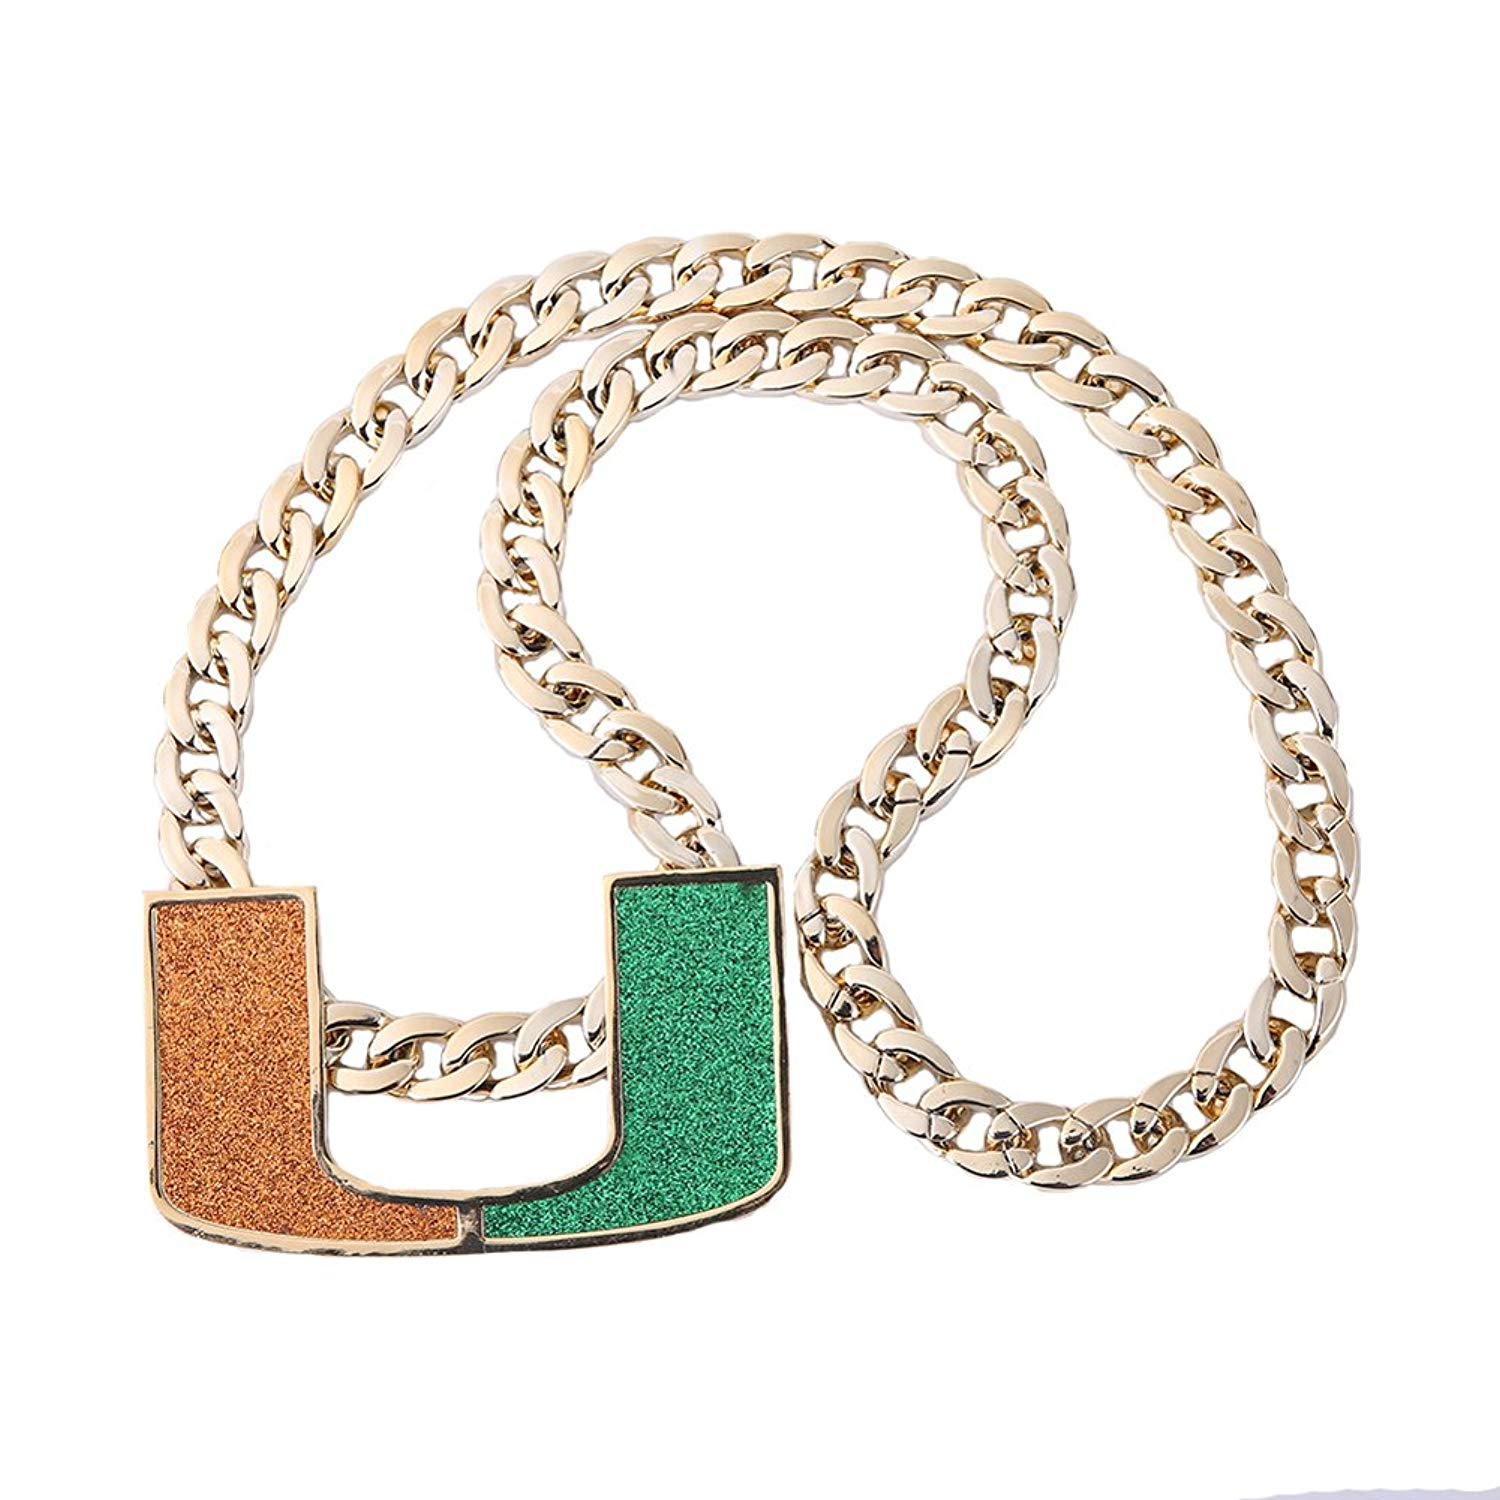 Miami Turnover Chain Replica Gold plated